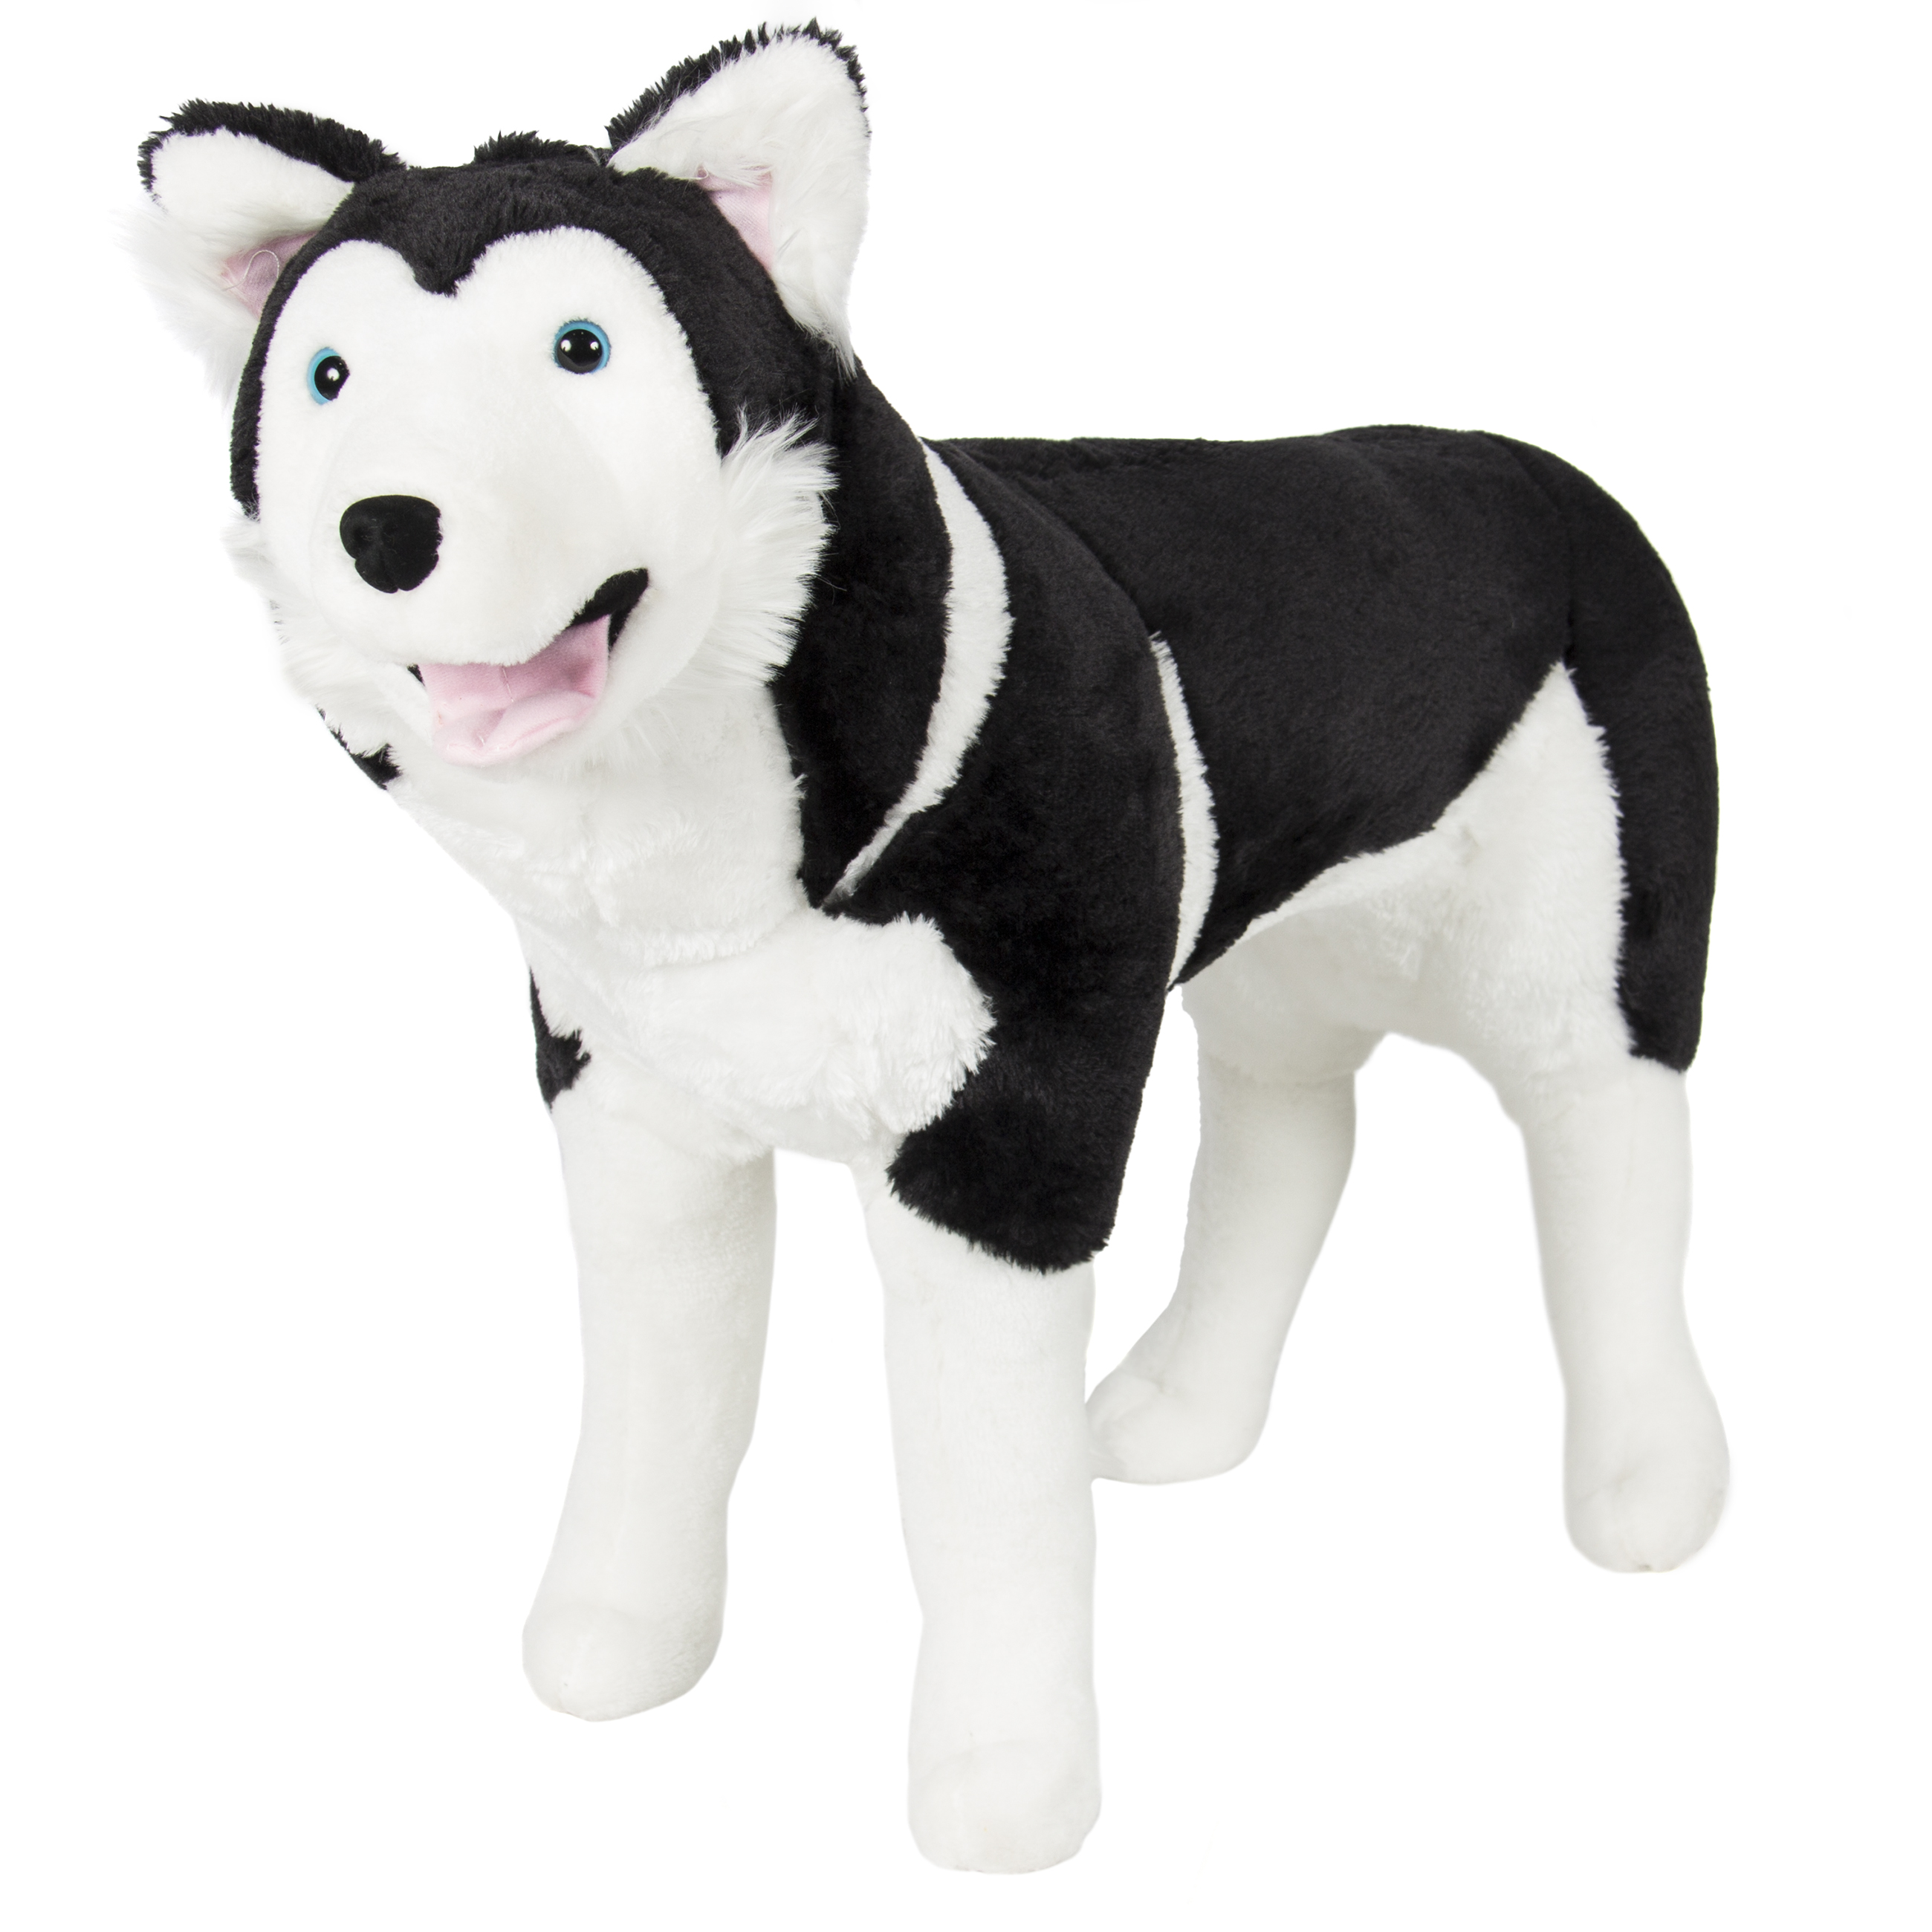 Best Choice Products Large Soft Plush Realistic Stuffed Animal Husky Dog Wolf Toy Pillow Pet - Black/White